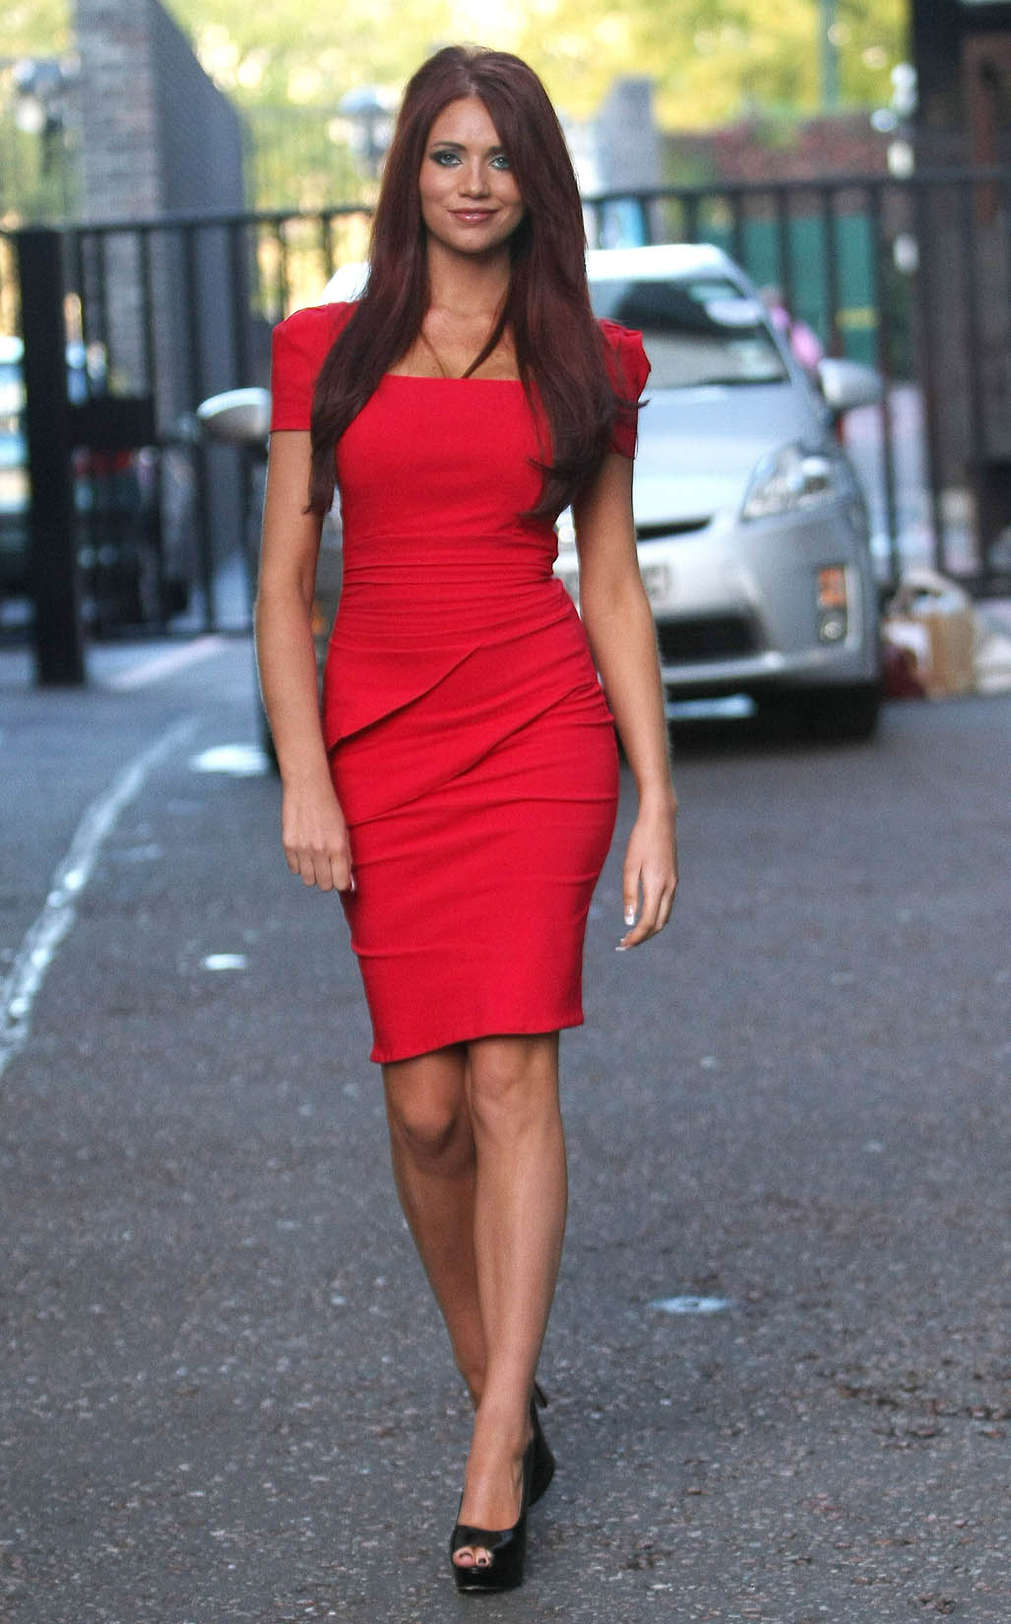 f55960bd7c6 Amy Childs Hot In Red Dress in London-10 – GotCeleb